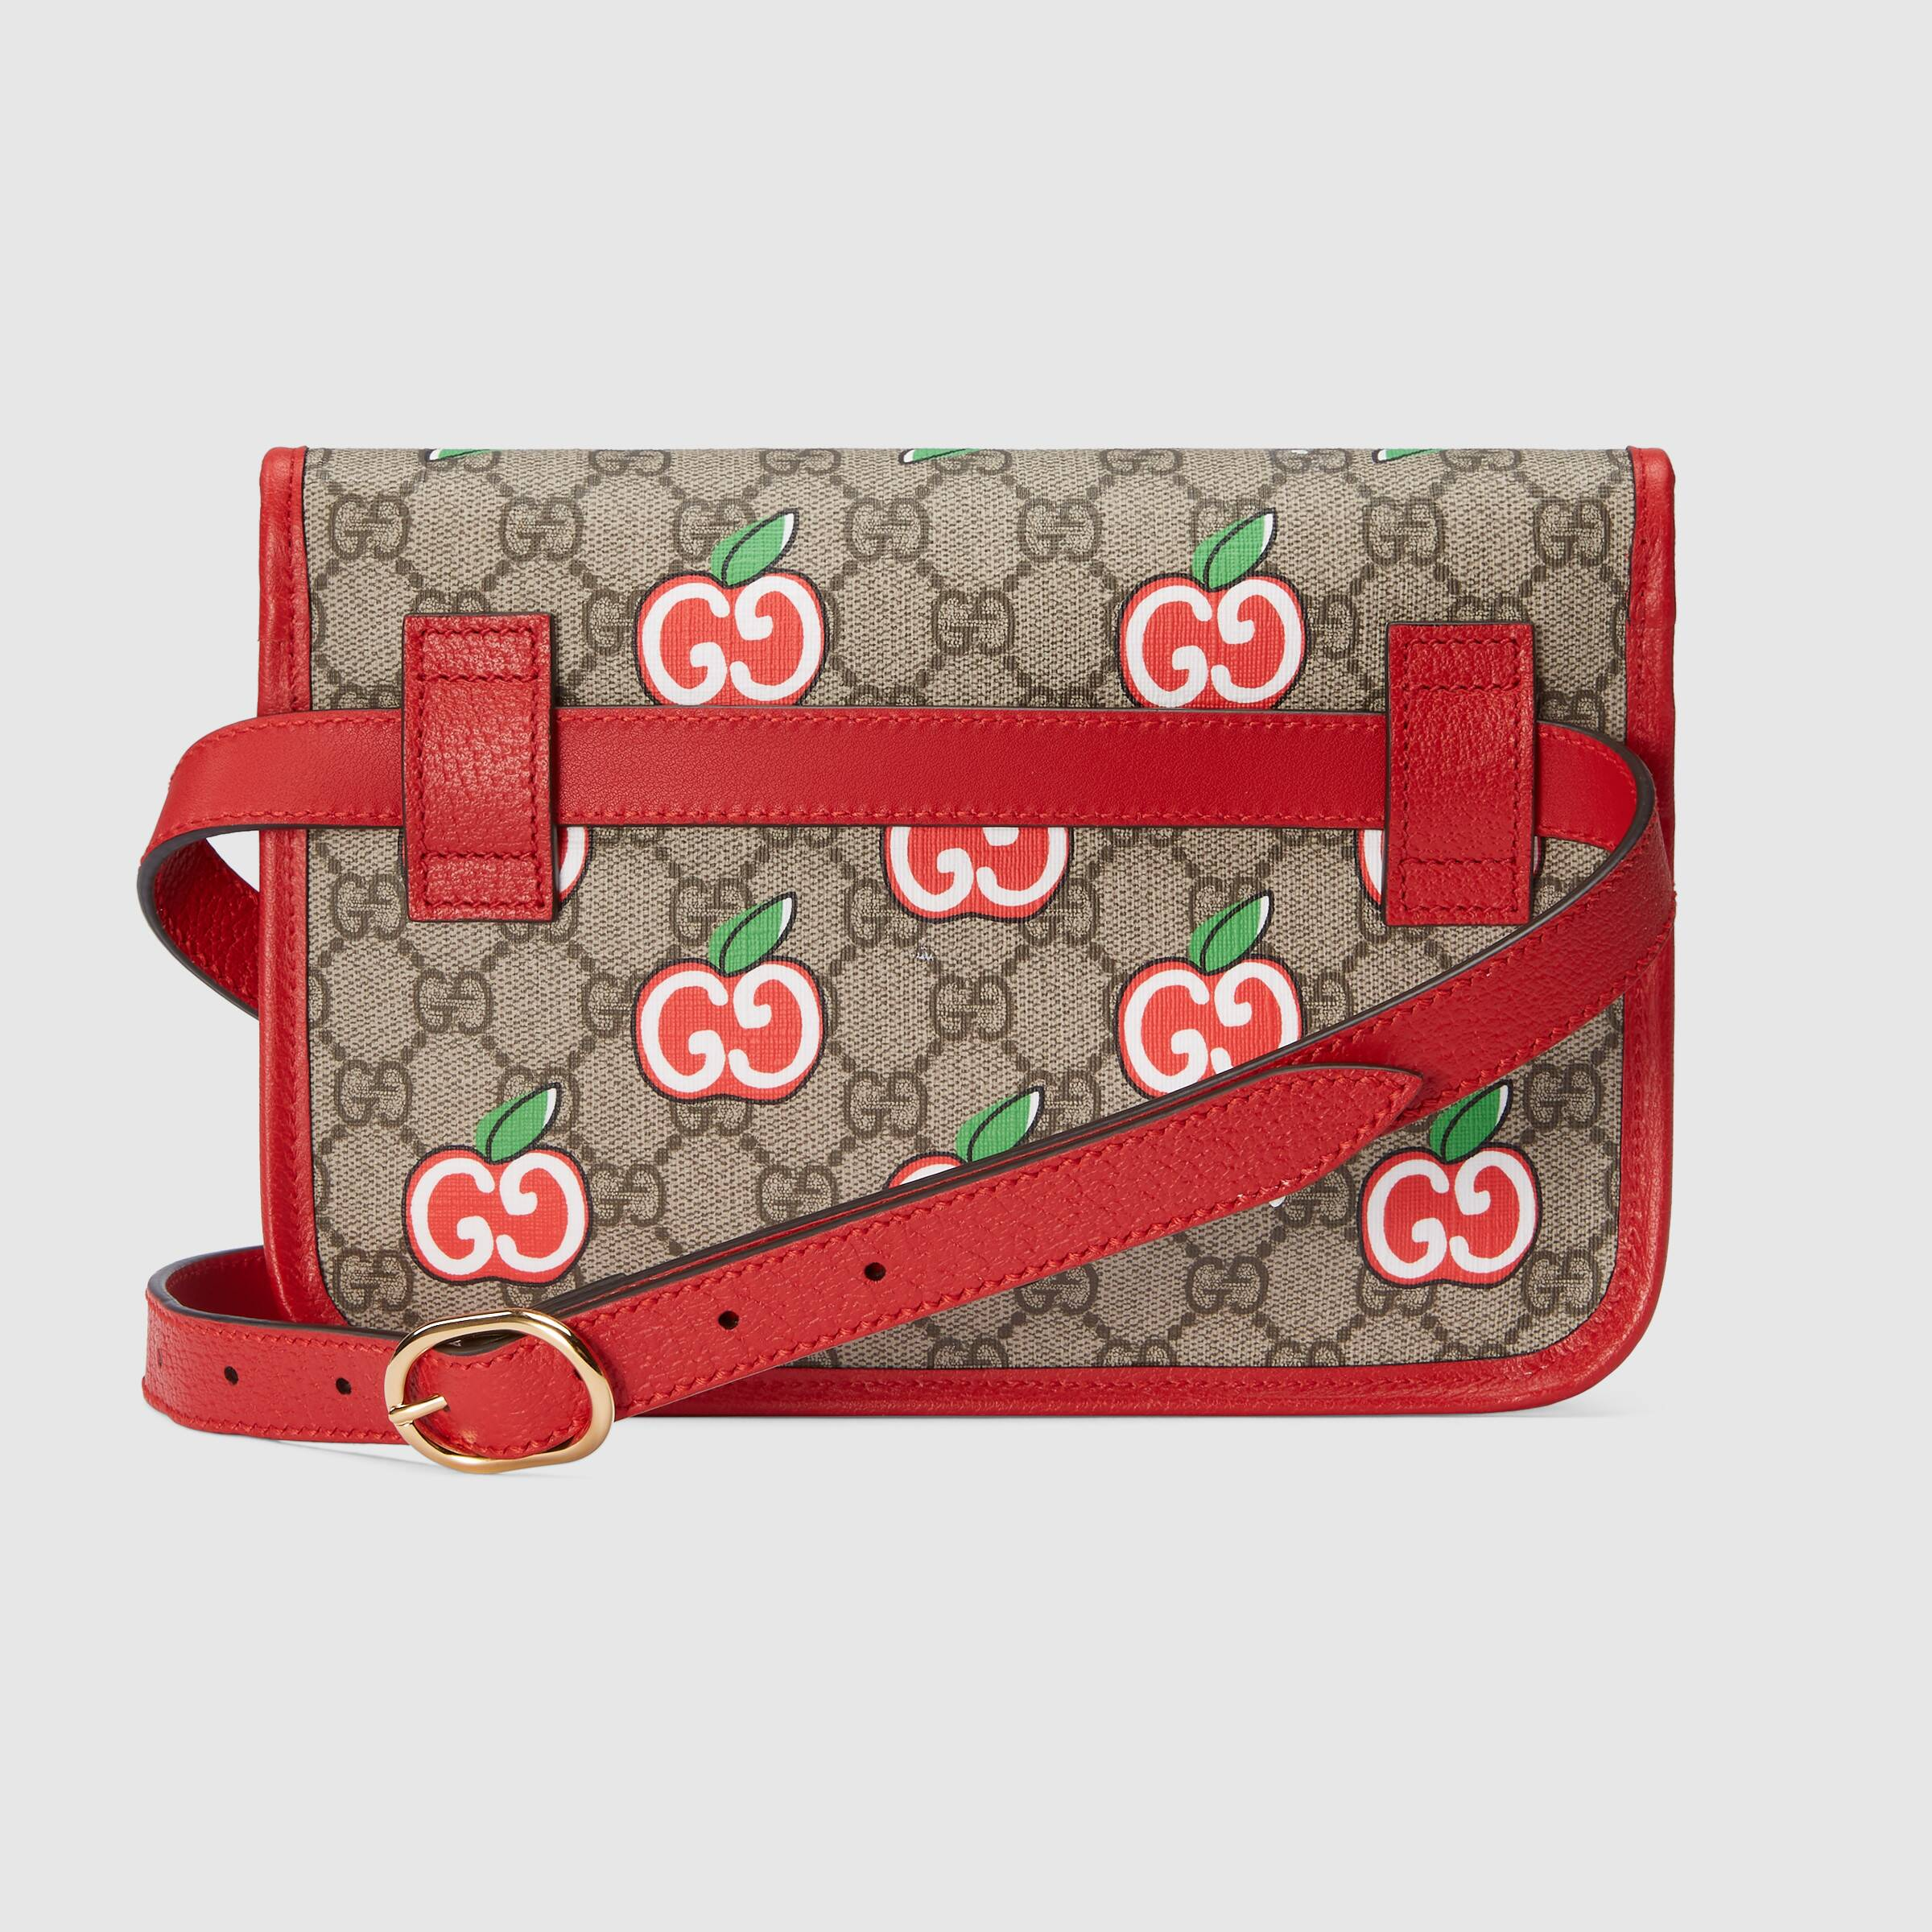 유럽직배송 구찌 GUCCI Gucci Chinese Valentine's Day belt bag 6252332EVBG8646